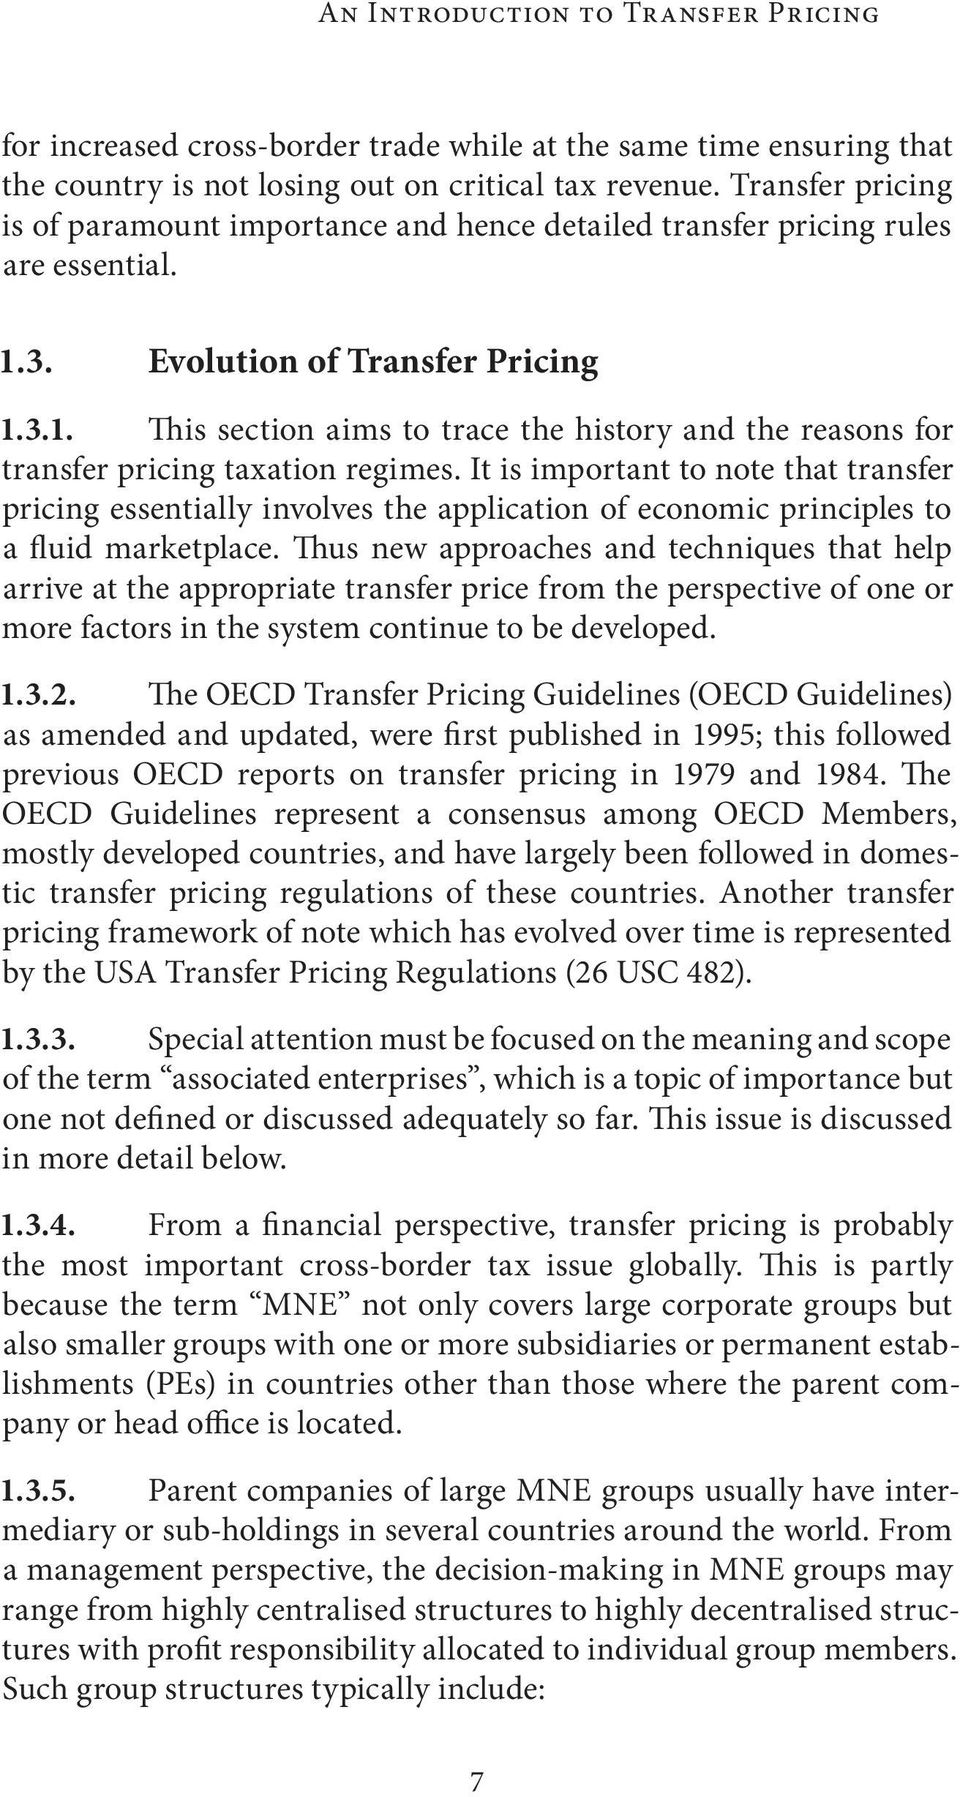 It is important to note that transfer pricing essentially involves the application of economic principles to a fluid marketplace.